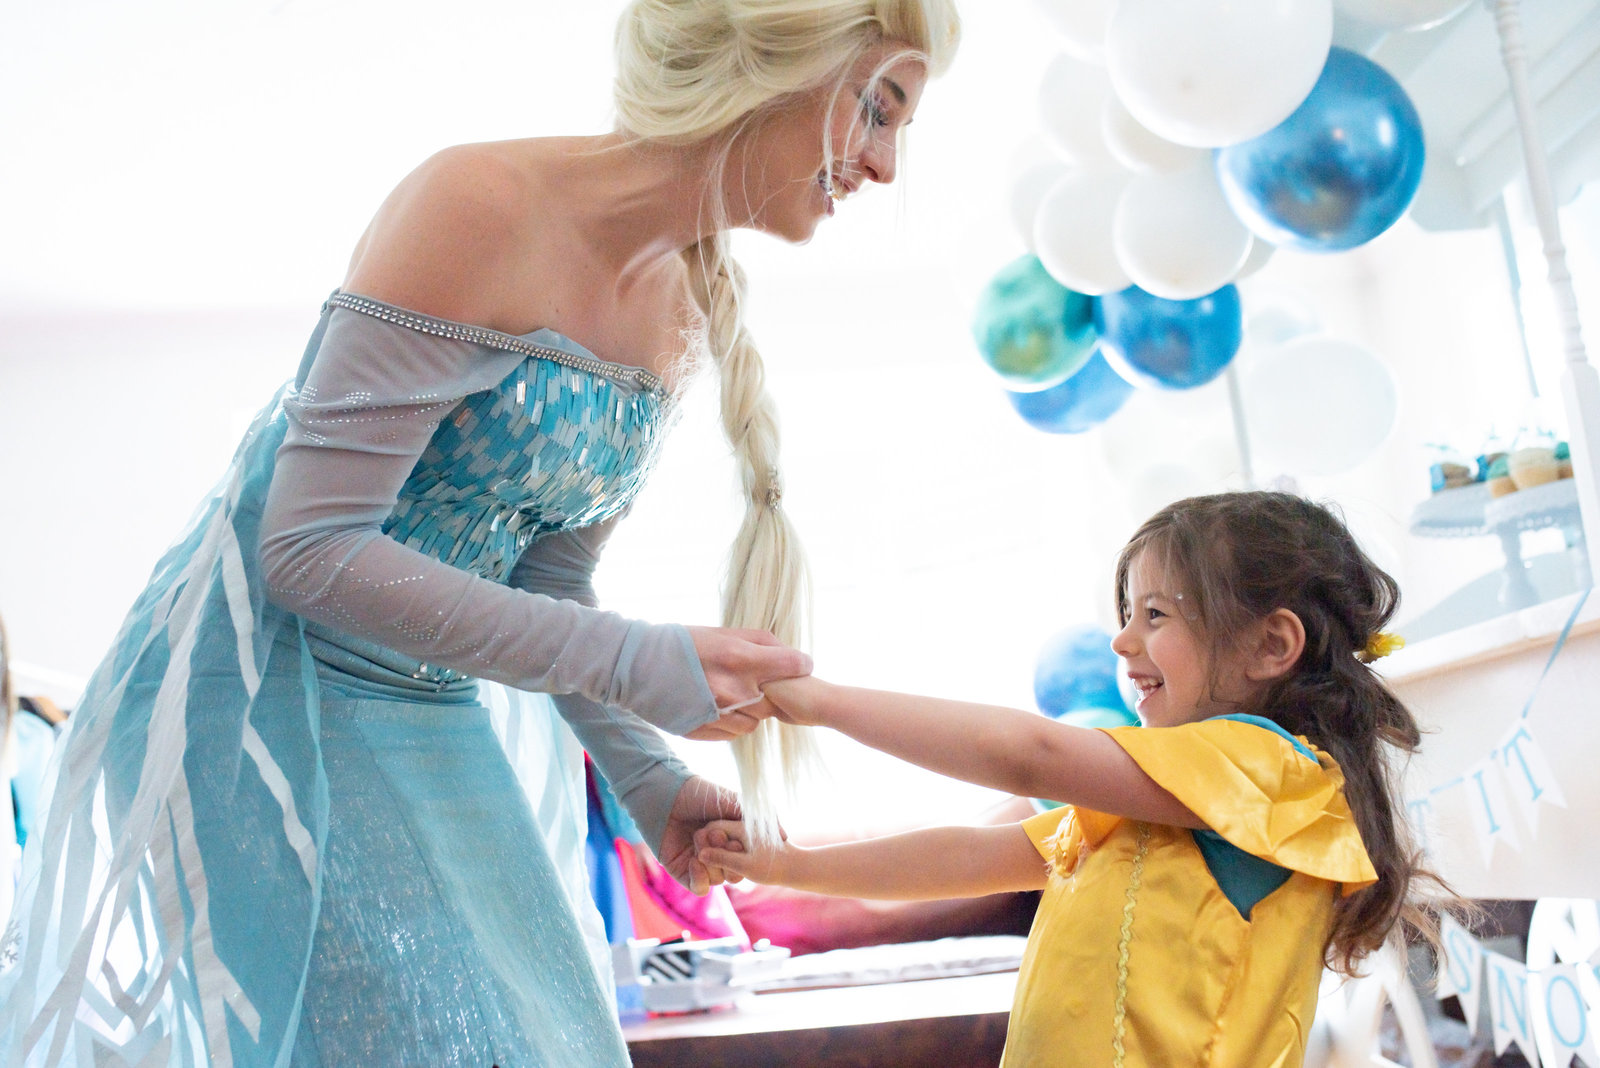 Wade_Muir_Photography_Party-Princesses-127